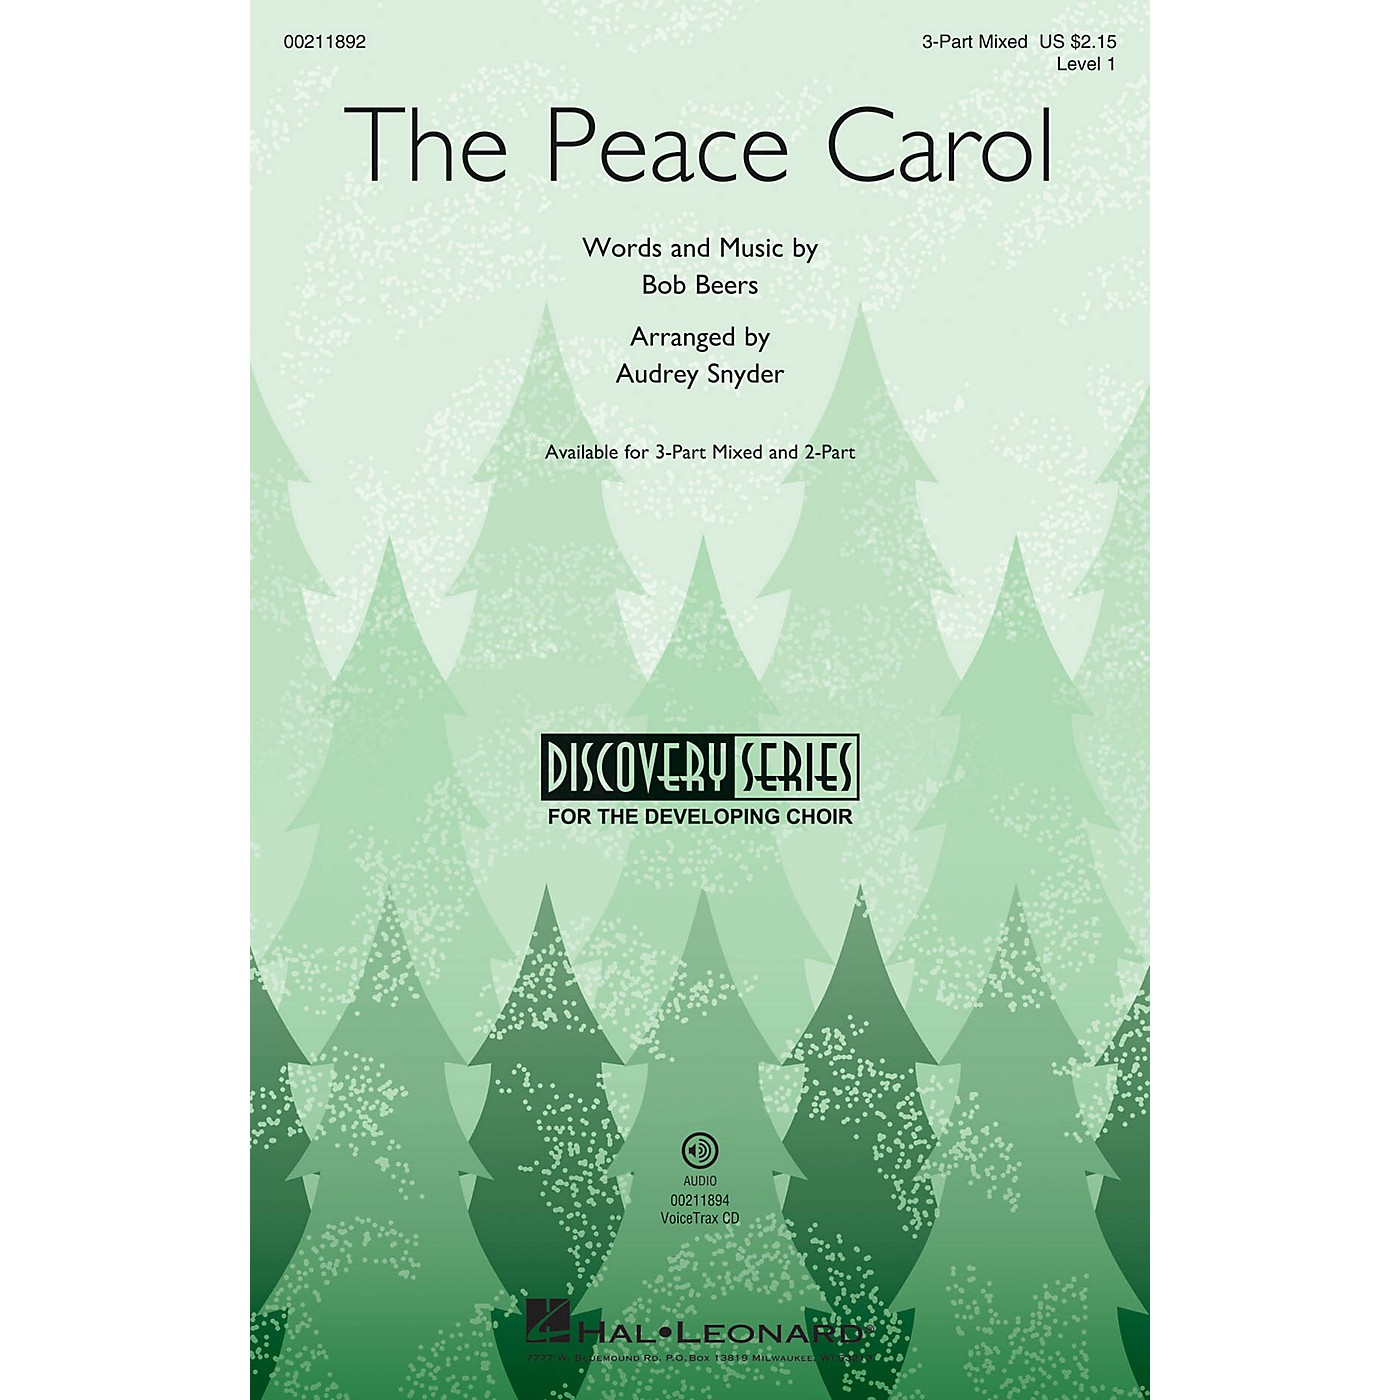 Hal Leonard The Peace Carol (Discovery Level 1) 3-Part Mixed arranged by Audrey Snyder thumbnail